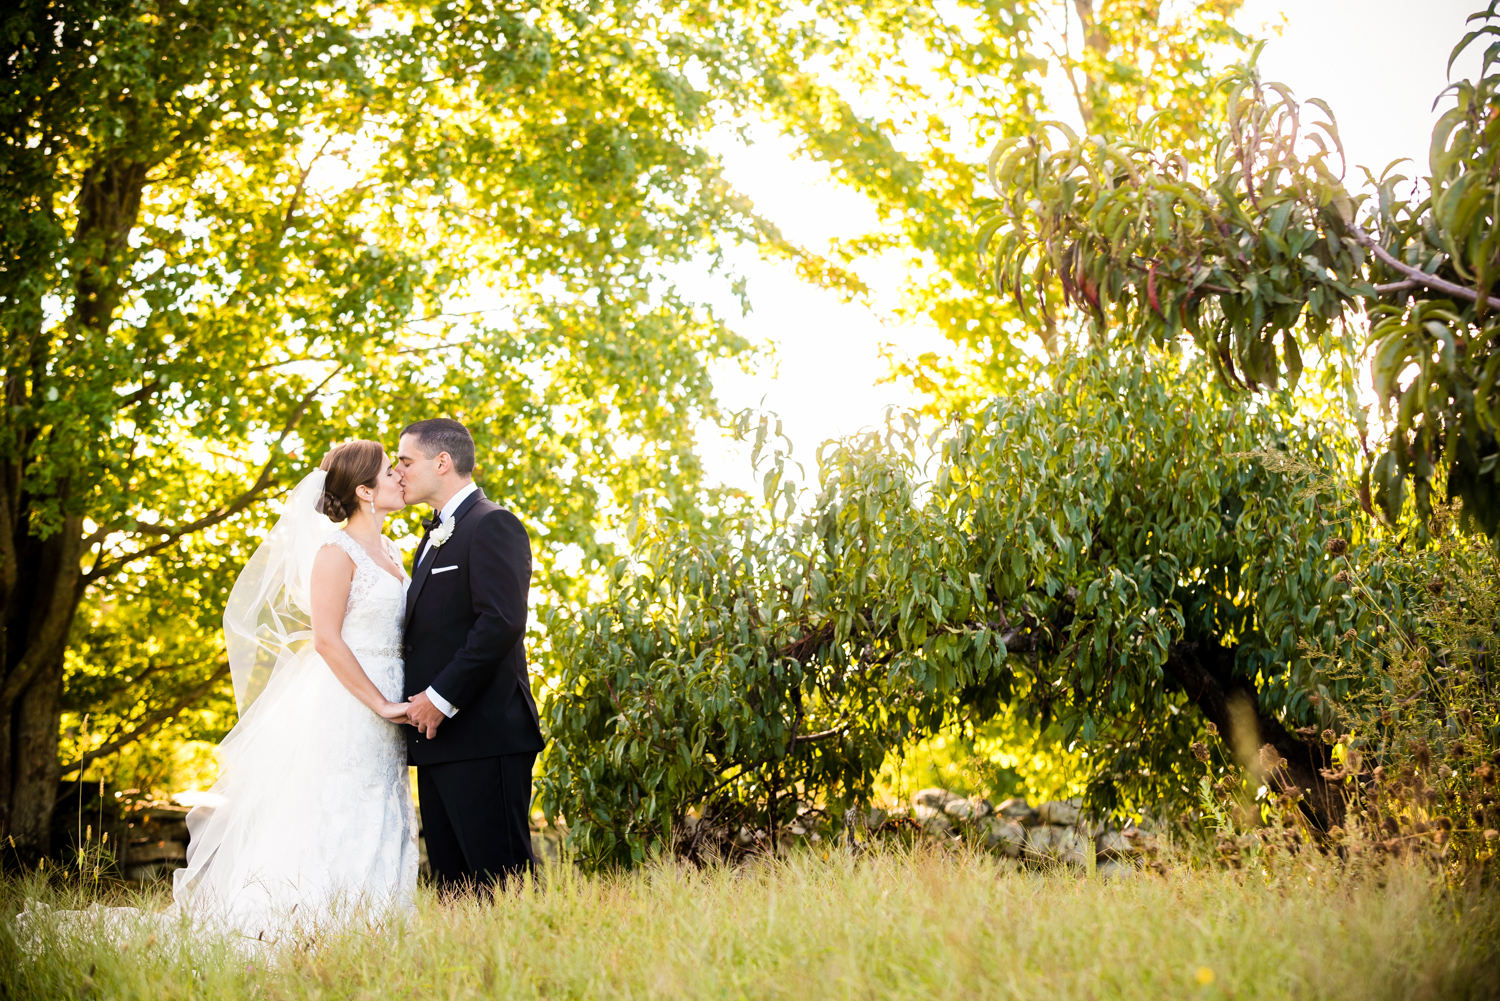 LeeAnn & Ryan - Brookstone Country Club Wedding